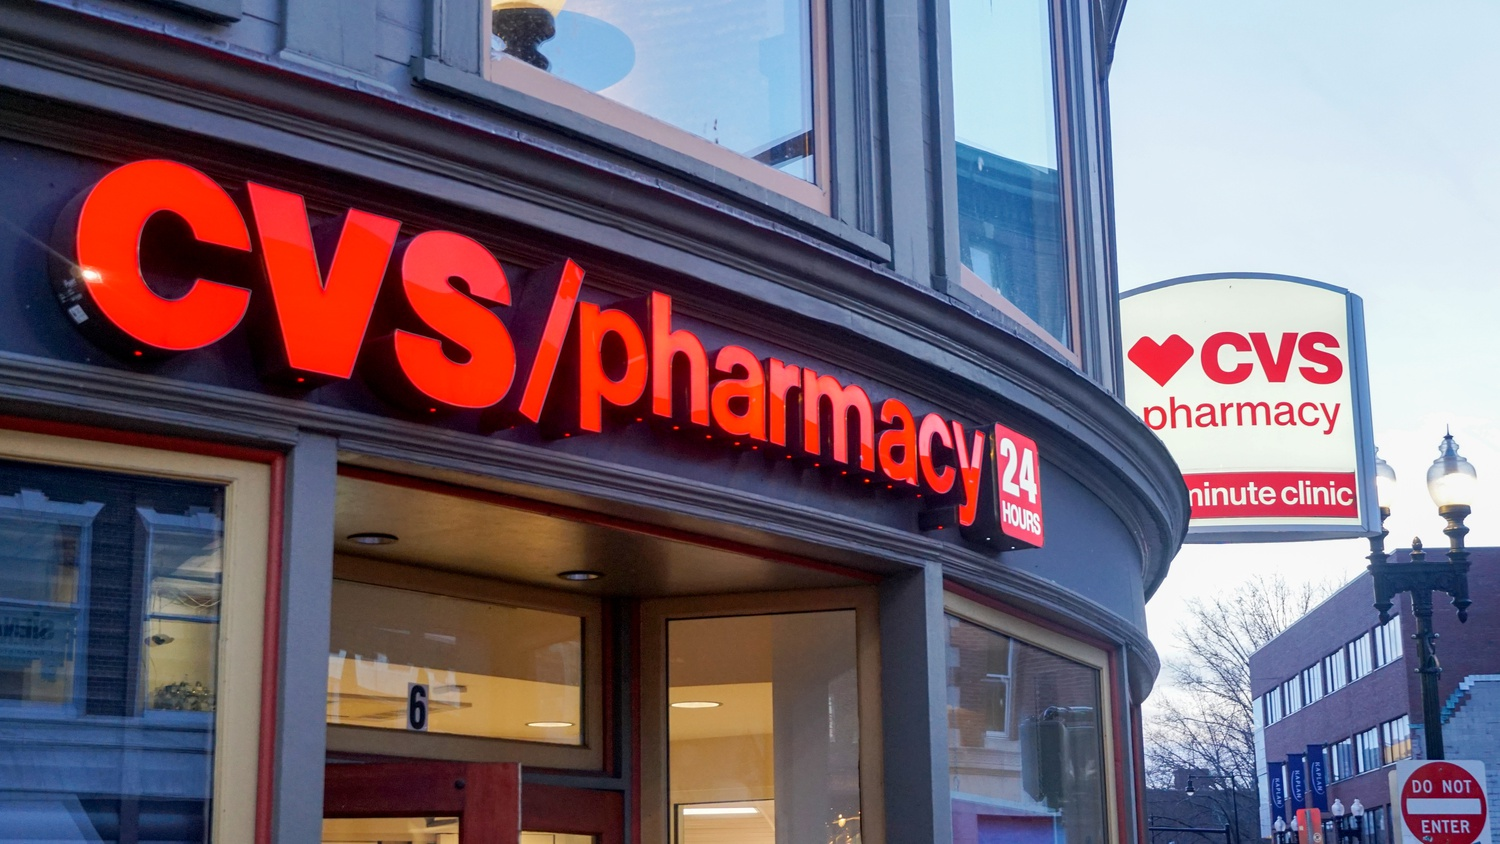 Undergraduates often fill their prescriptions at the CVS in Harvard Square.